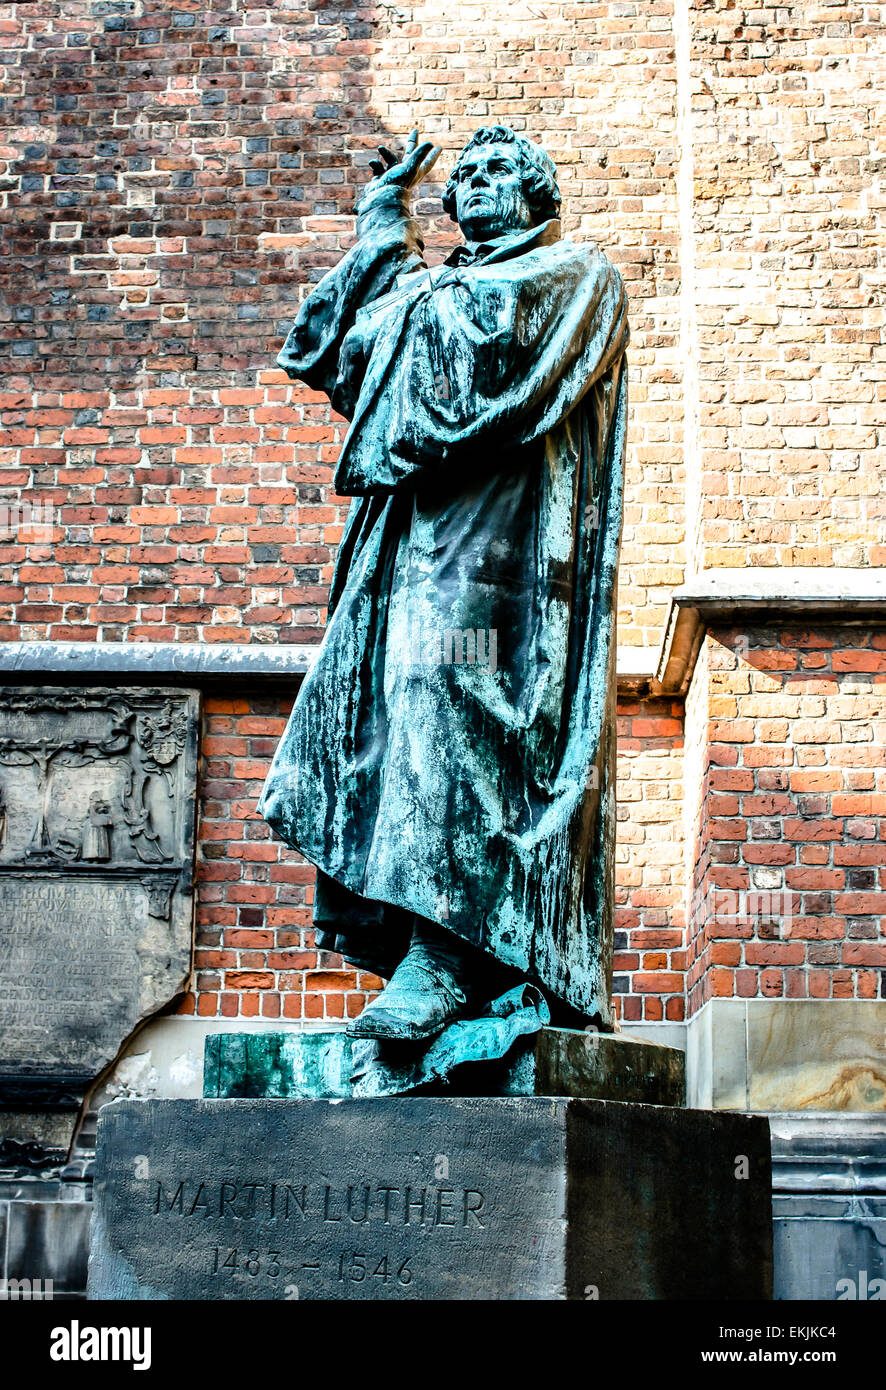 A large statue of religious reformer Martin Luther in Hannover, Germany outside the historic Marktkirche church. - Stock Image